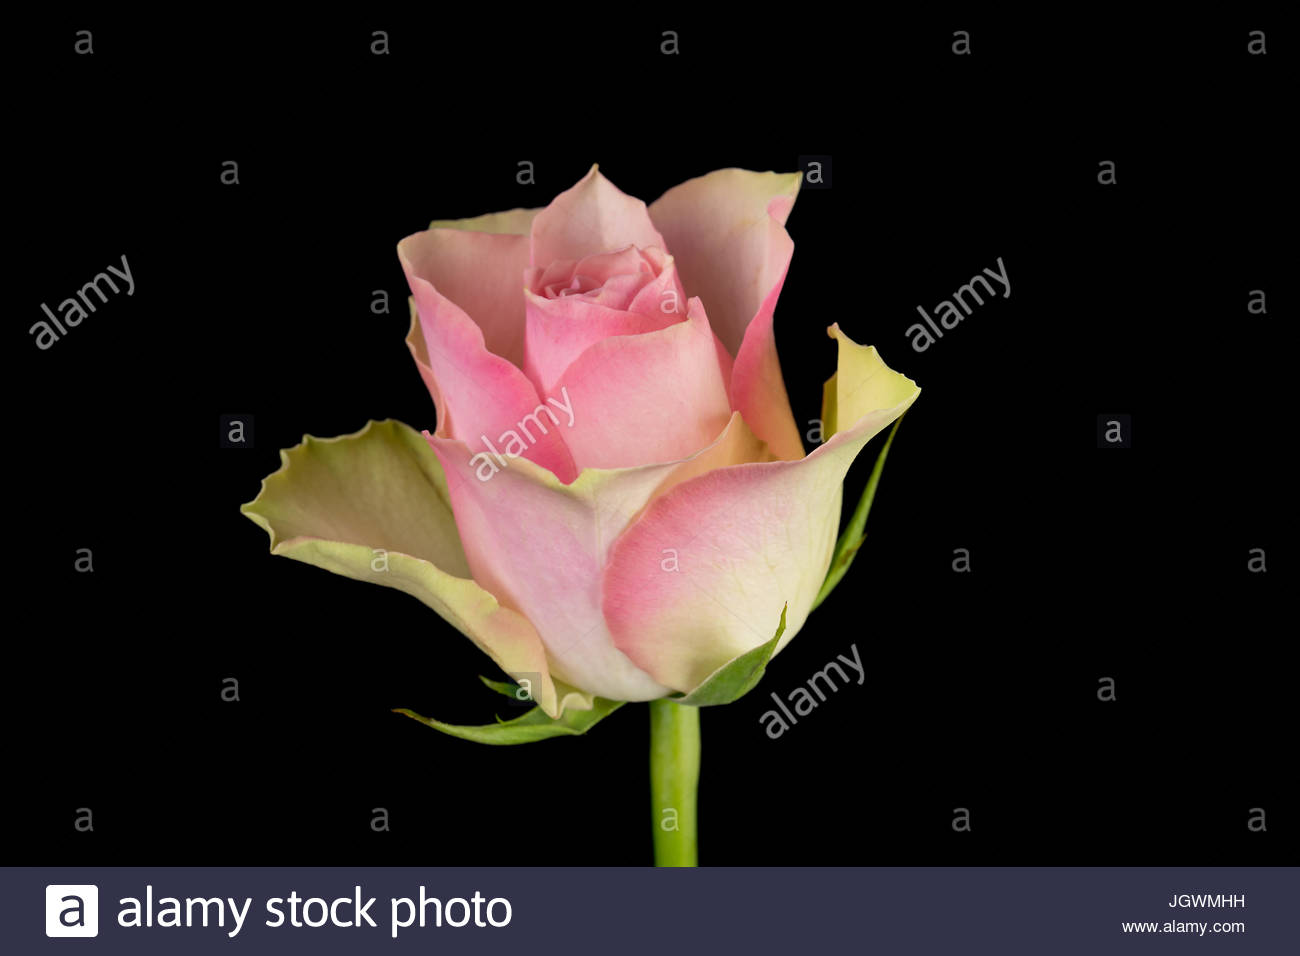 Pink and white rose black background close-up Stock Photo